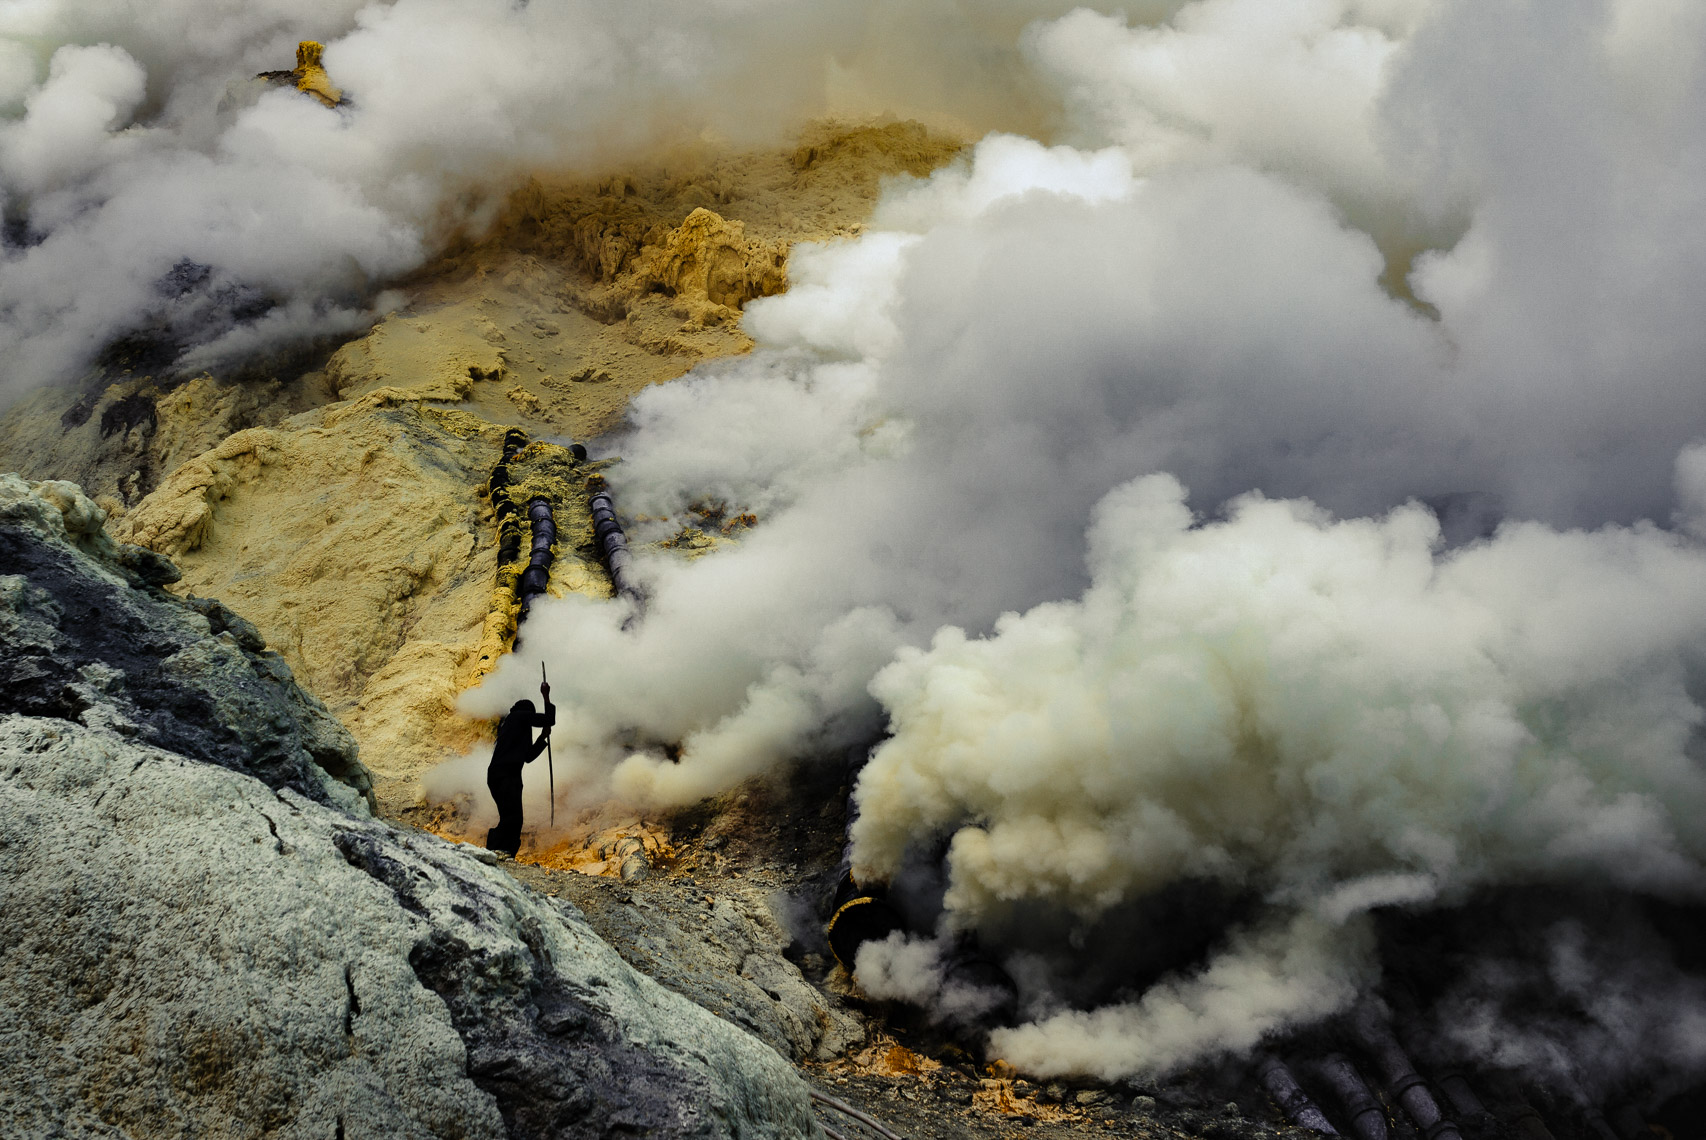 richard-schabetsberger-ijen-volcano-java-indonesia-001